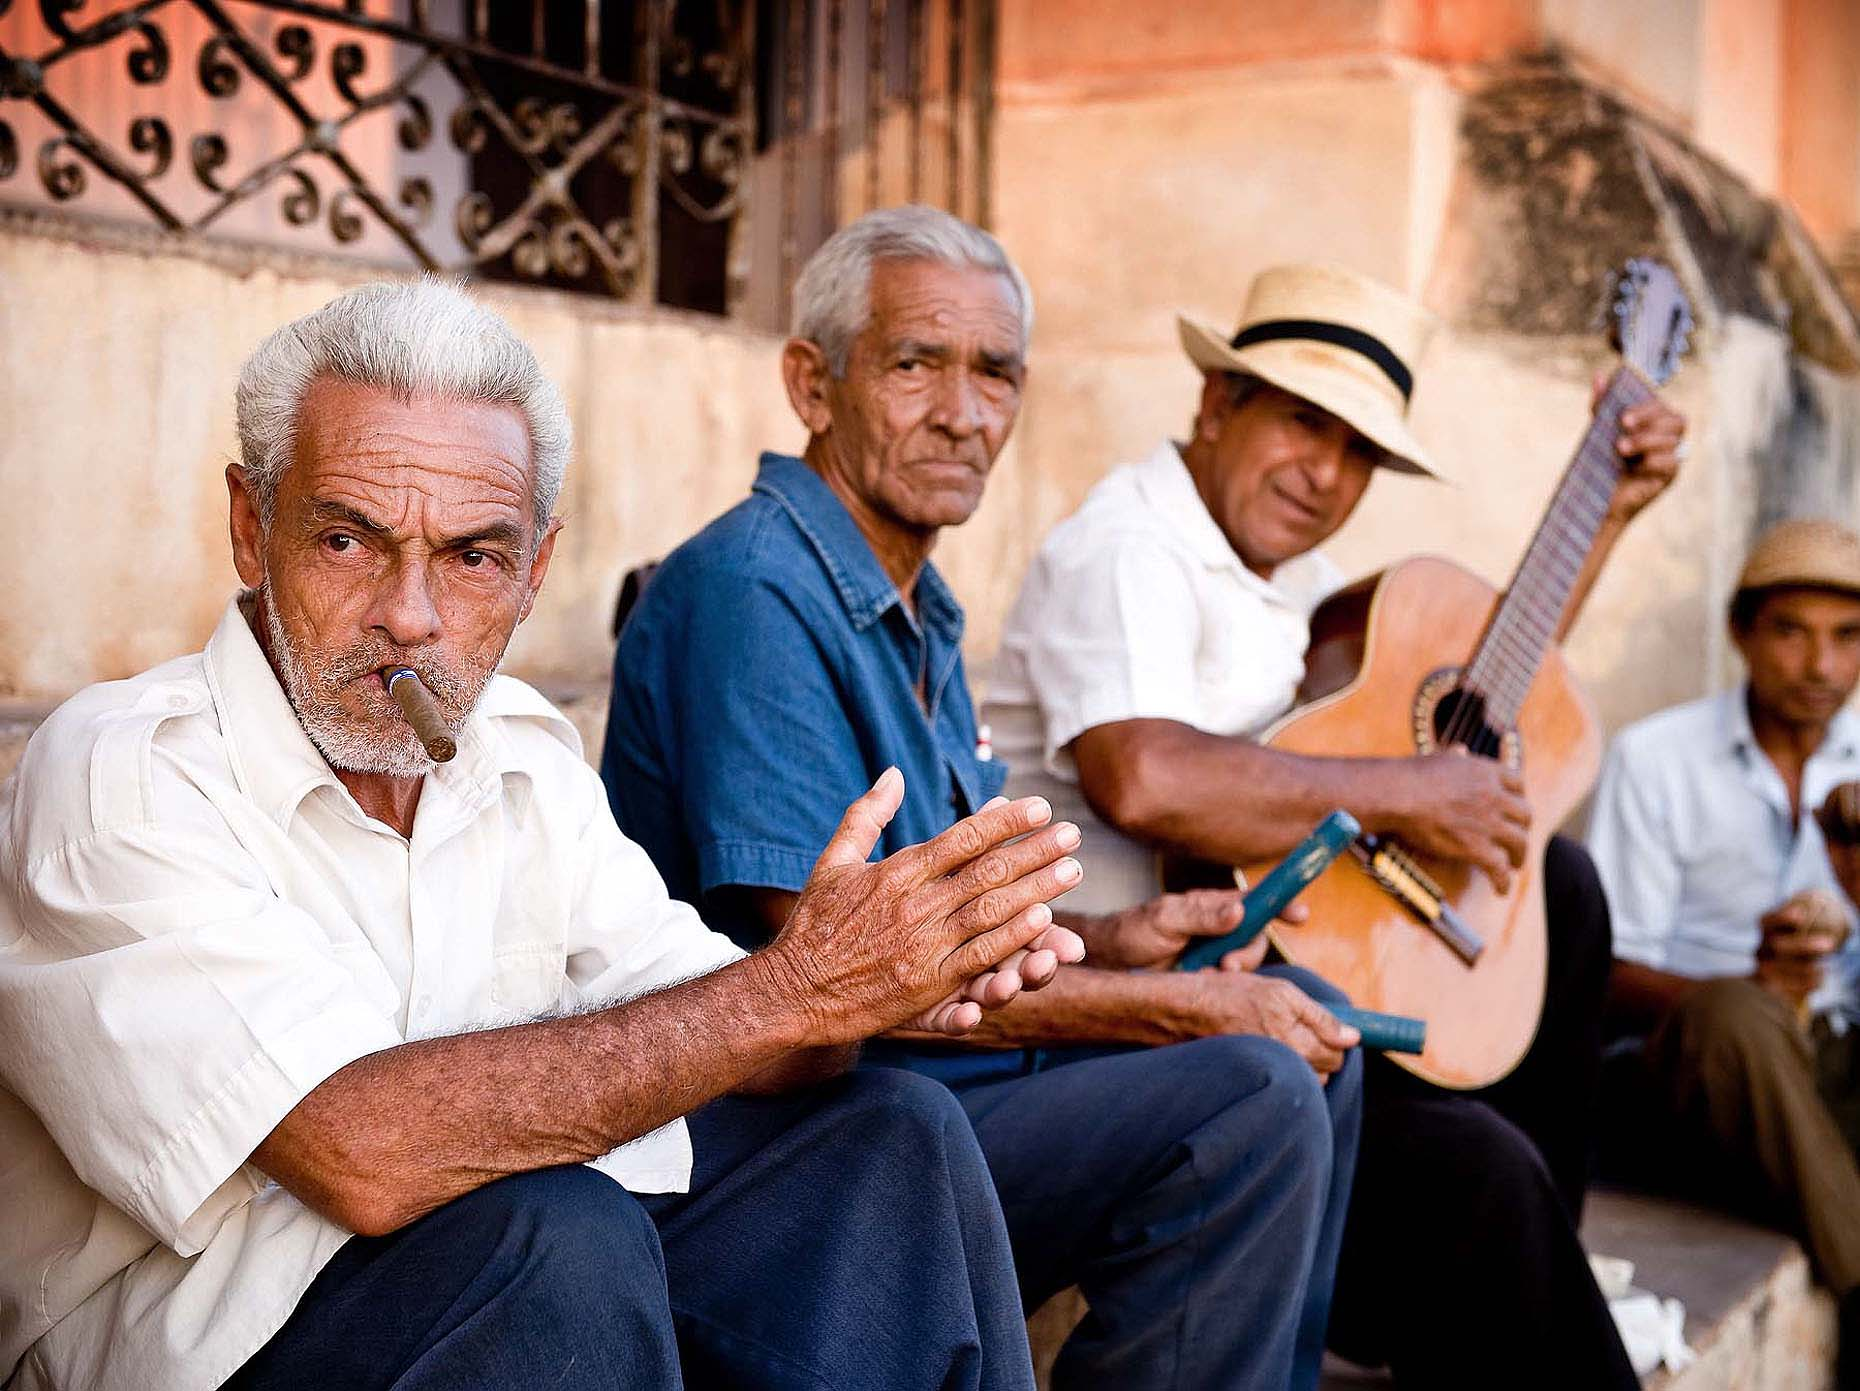 trinidad-men-band-cigar-cuban-group-travel-photography-cuba-33